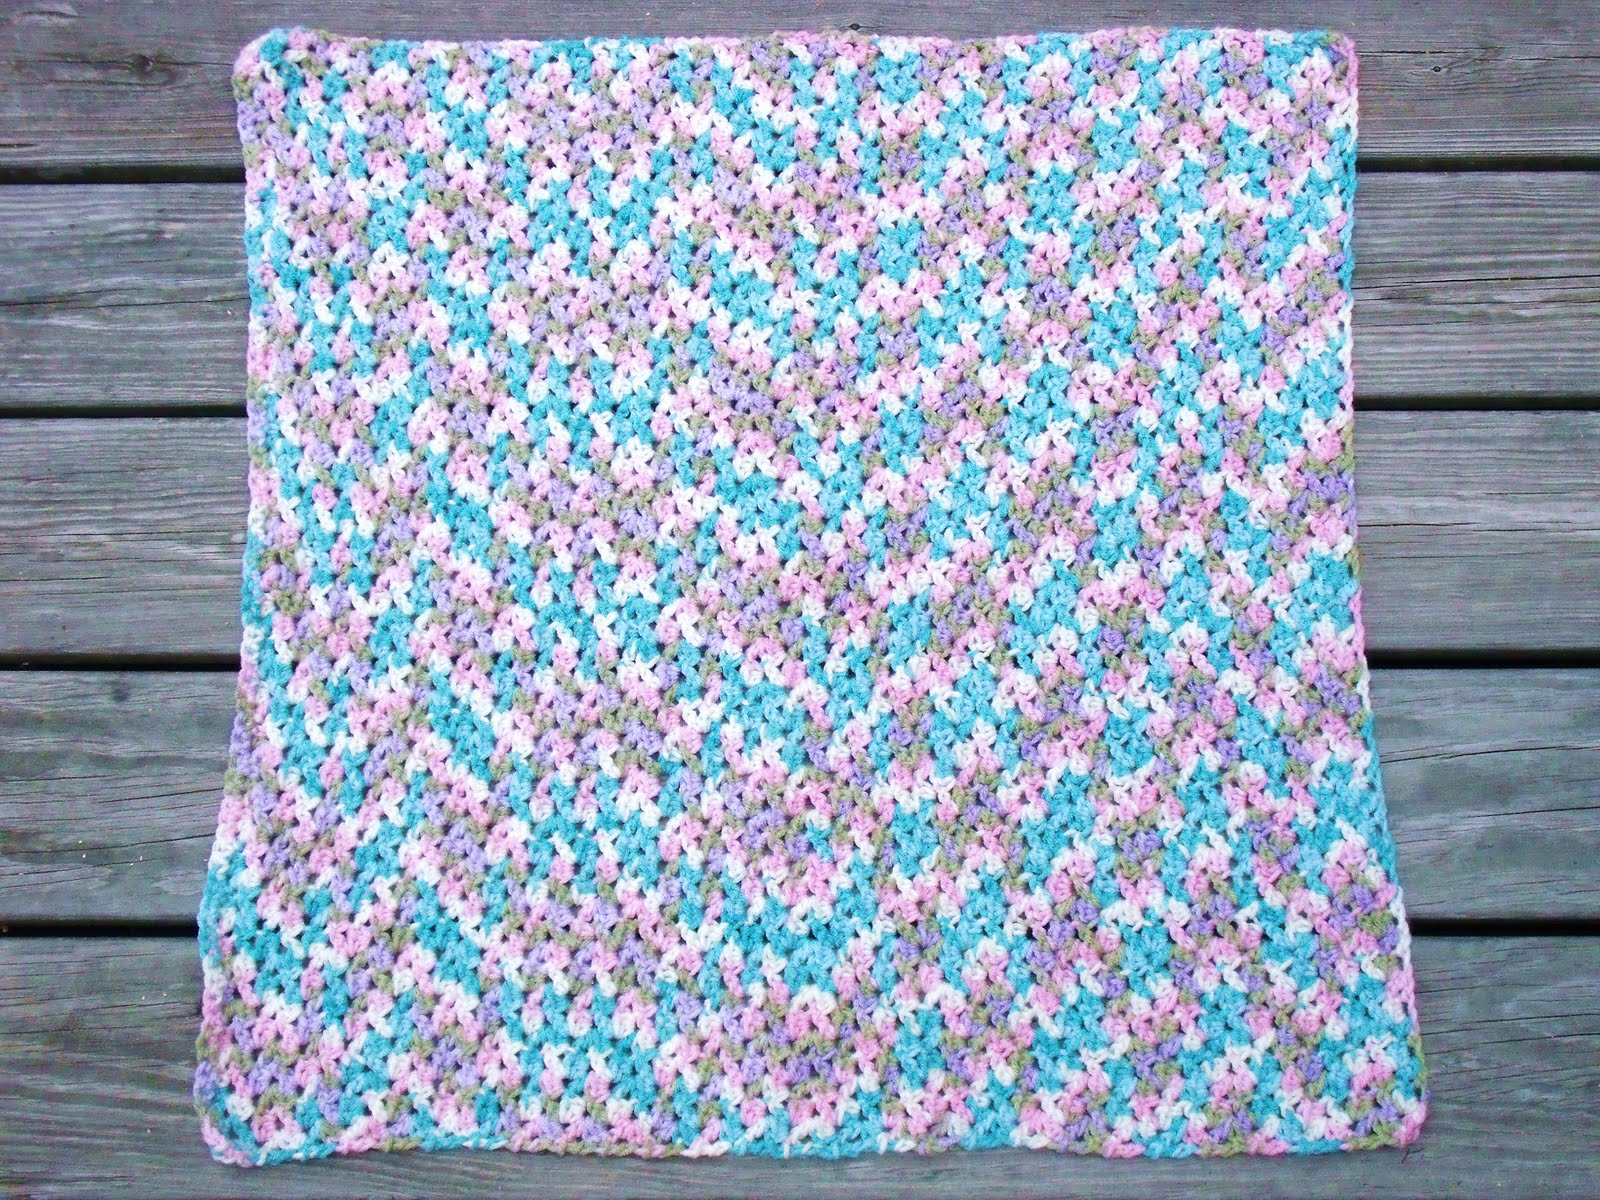 Crochet Baby Blanket Patterns Variegated Yarn : Easy Crochet Pattern: Shell Look Baby Blanket Finish